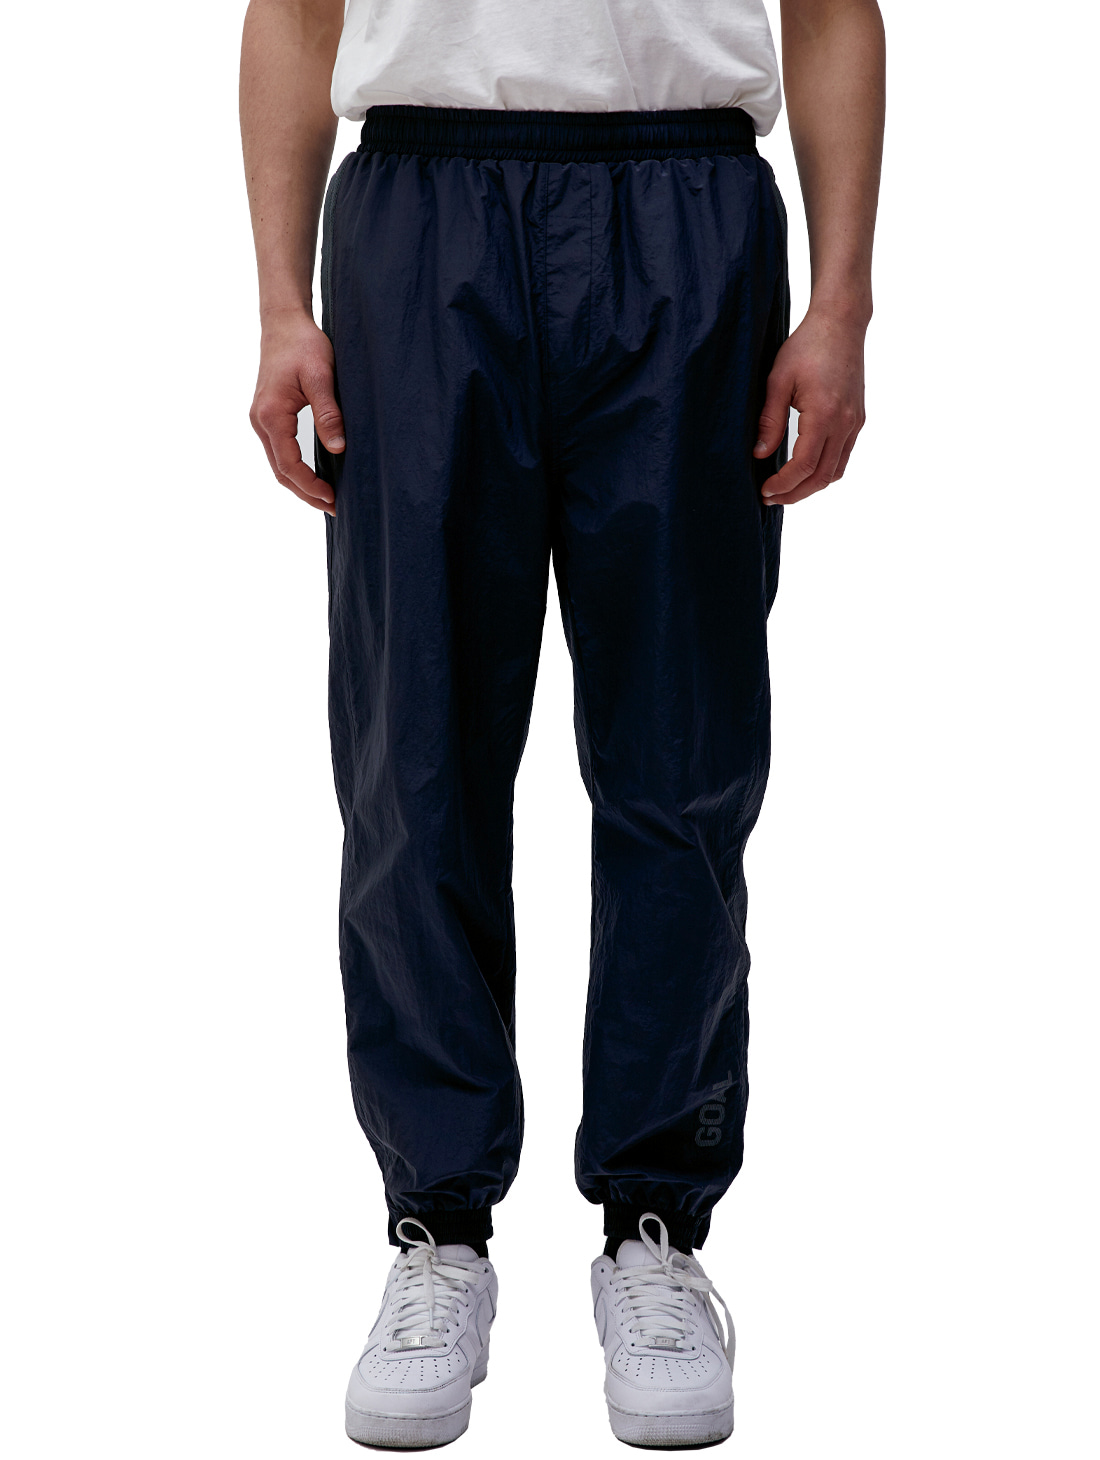 WARMUP PANTS - NAVY